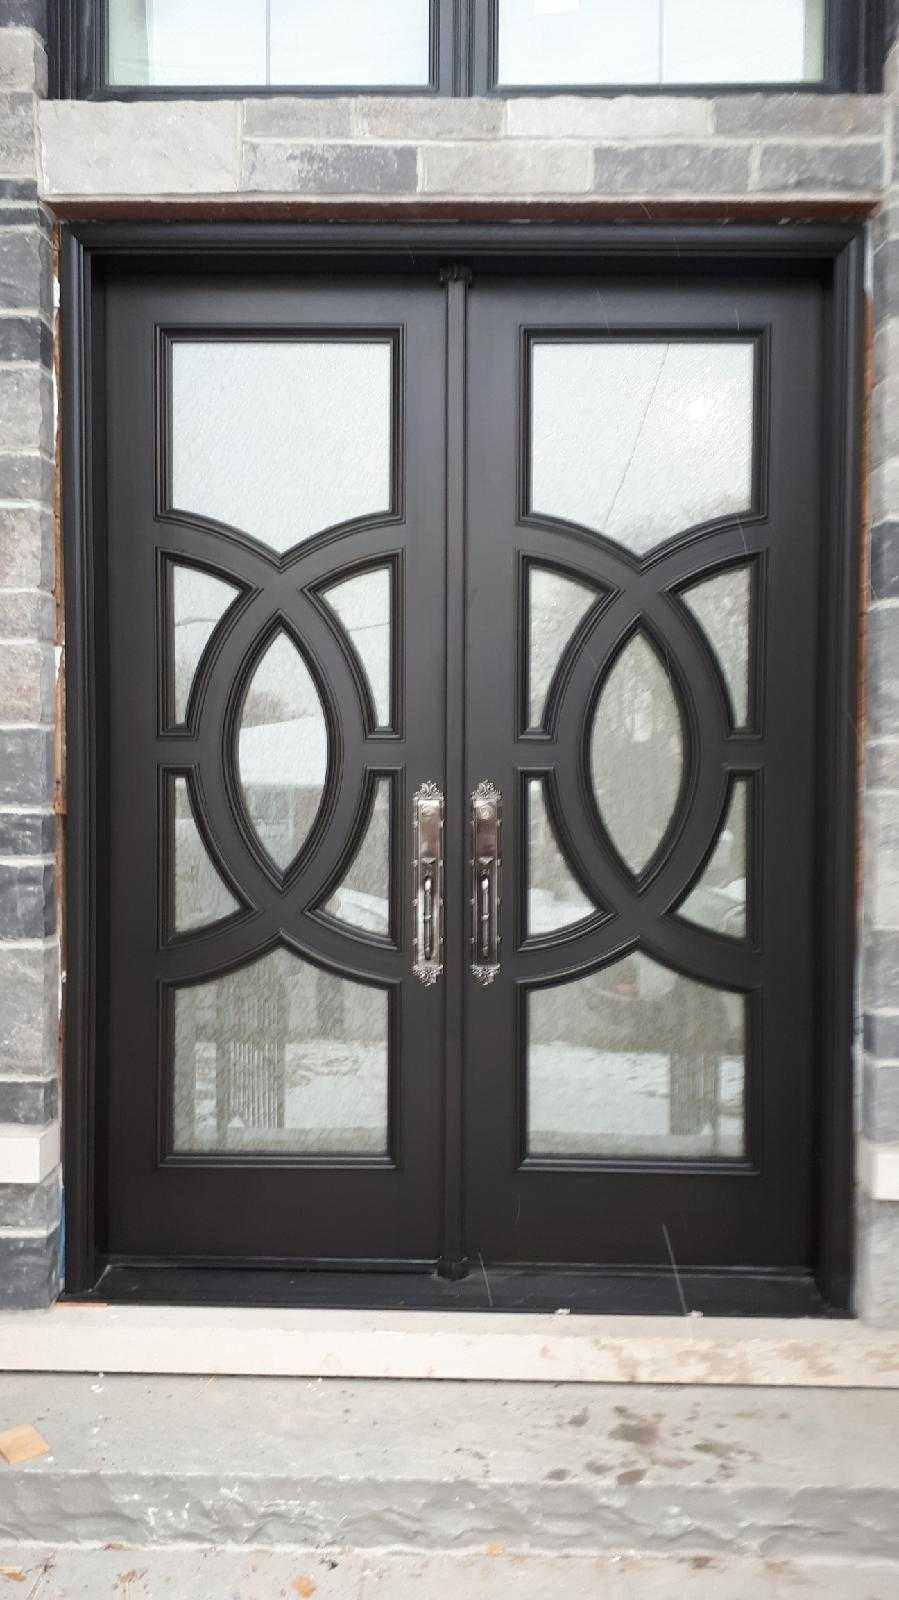 """Consistency is what transform average into excellence"" #SolidWood, #Doors, #Wood #Mahogany, #CustomMadeDoors, #EntryDoors.#DistinctiveLo­ok, #FityourHome Made by #NorthwoodDoorsInc. Your best value and quality, #HandCraftedDoors. Every door #Manifactured by us has our corporate stamp - a testament to our dedication and passion in #Woodwork. Let #NorthwoodDoorsInc. add to your home's #CurbAppeal by enhancing the quality and beauty of your #EntryDoors. Visit our #Showroom to envision how one of our many #doors on display might look like at your #Home. Contact us today Tel. 416-253-2034, info@northwooddoors.com, www.northwooddoor.com — in Toronto, Ontario"